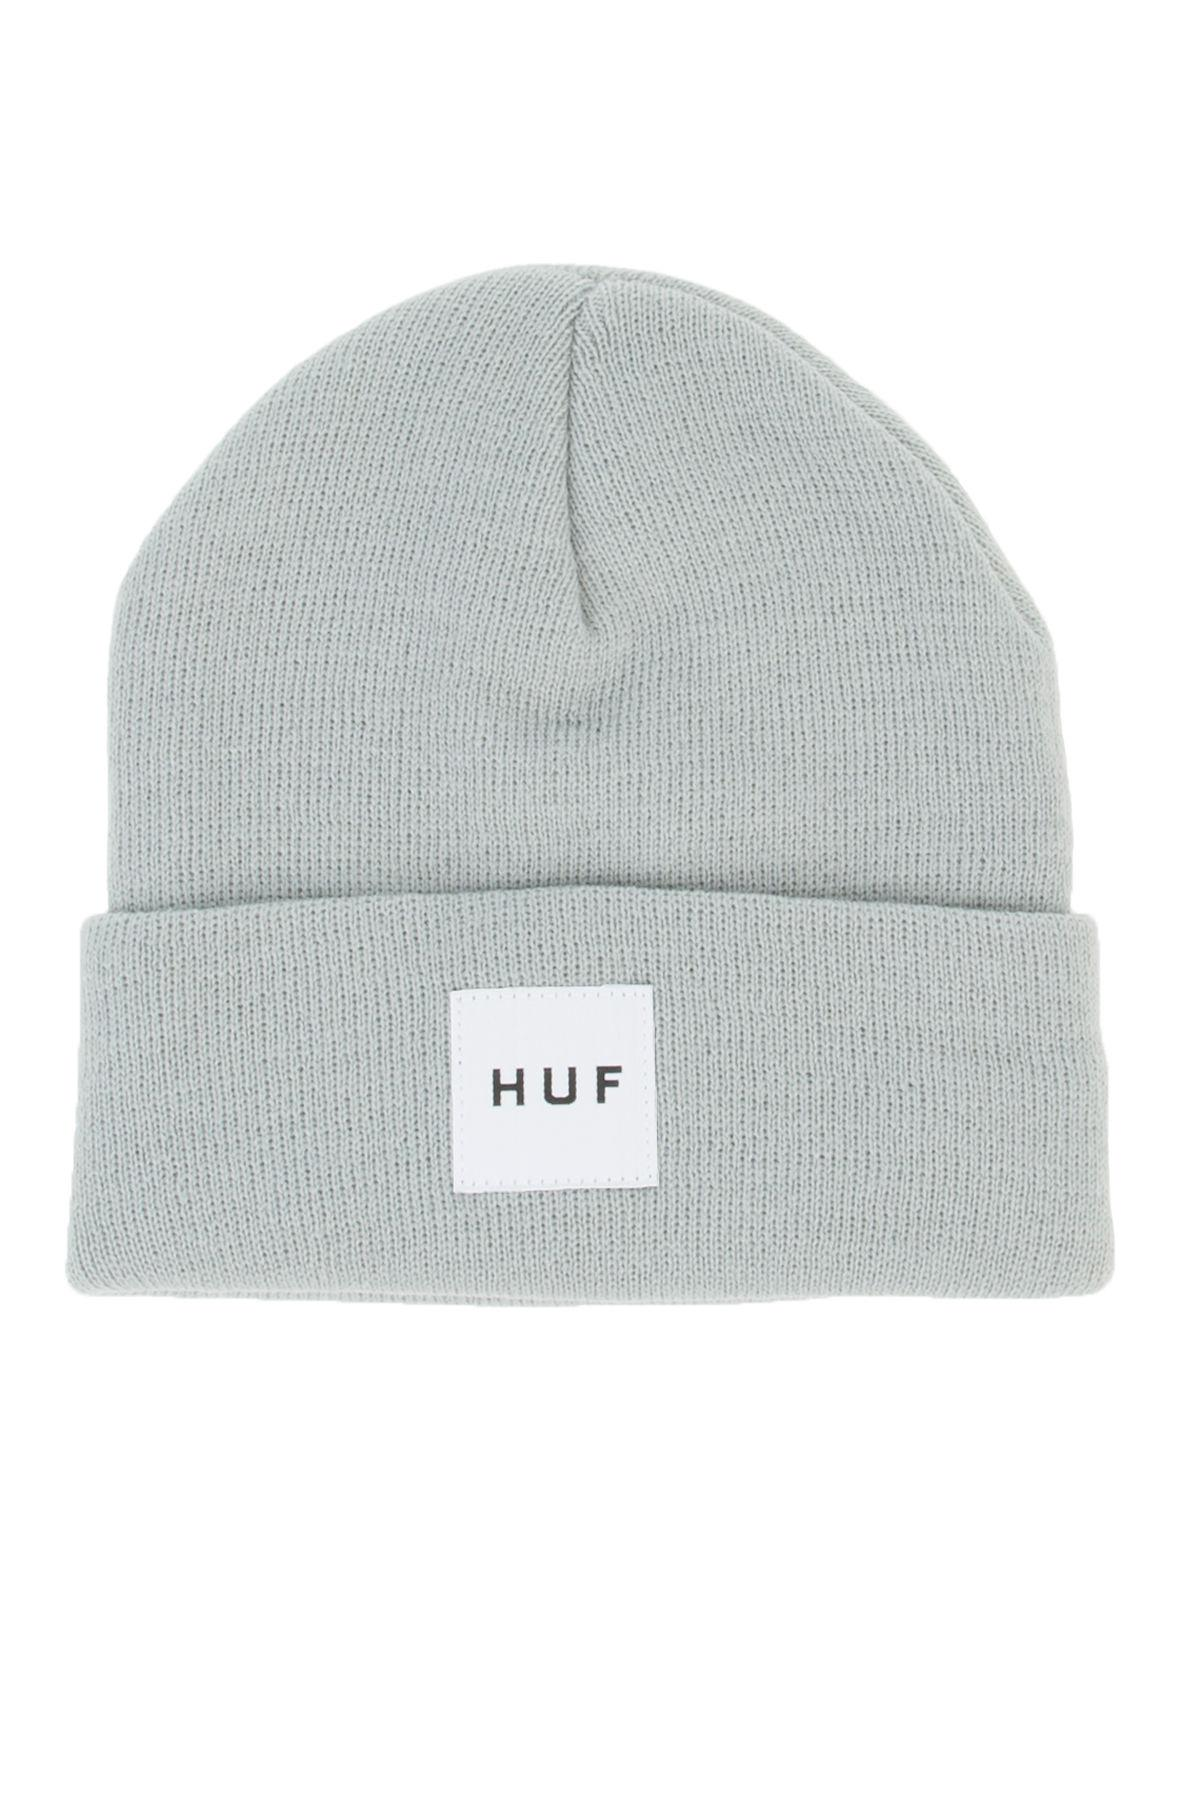 dcad2efea55 Lyst - Huf The Box Logo Beanie in Gray for Men